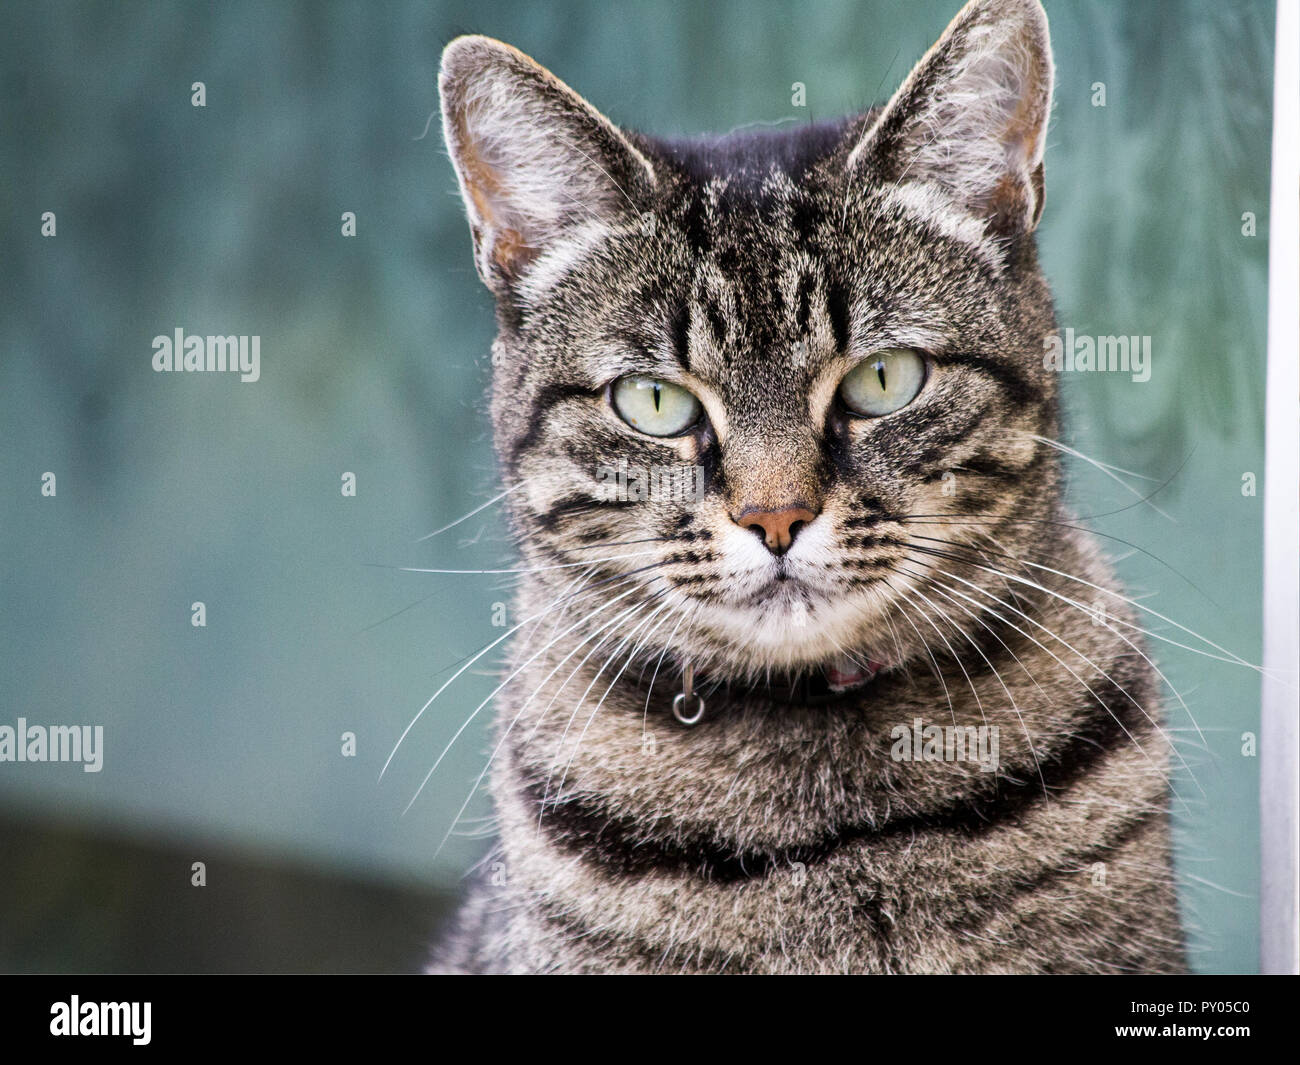 A beautiful cat with very thin iris' in her eyes posing for the camera. - Stock Image